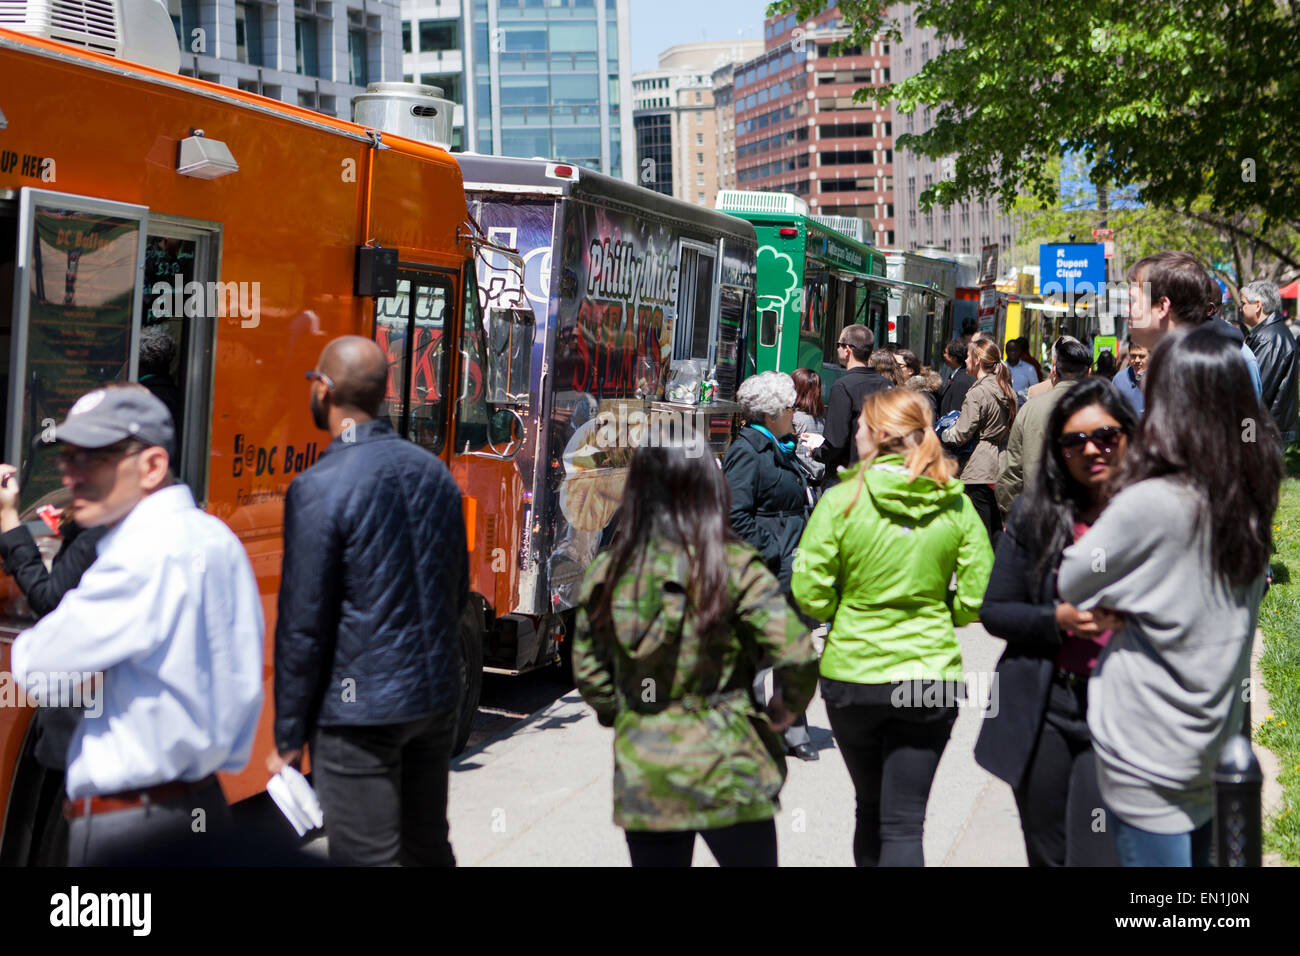 Food trucks line up on an urban street  - Washington, DC USA - Stock Image